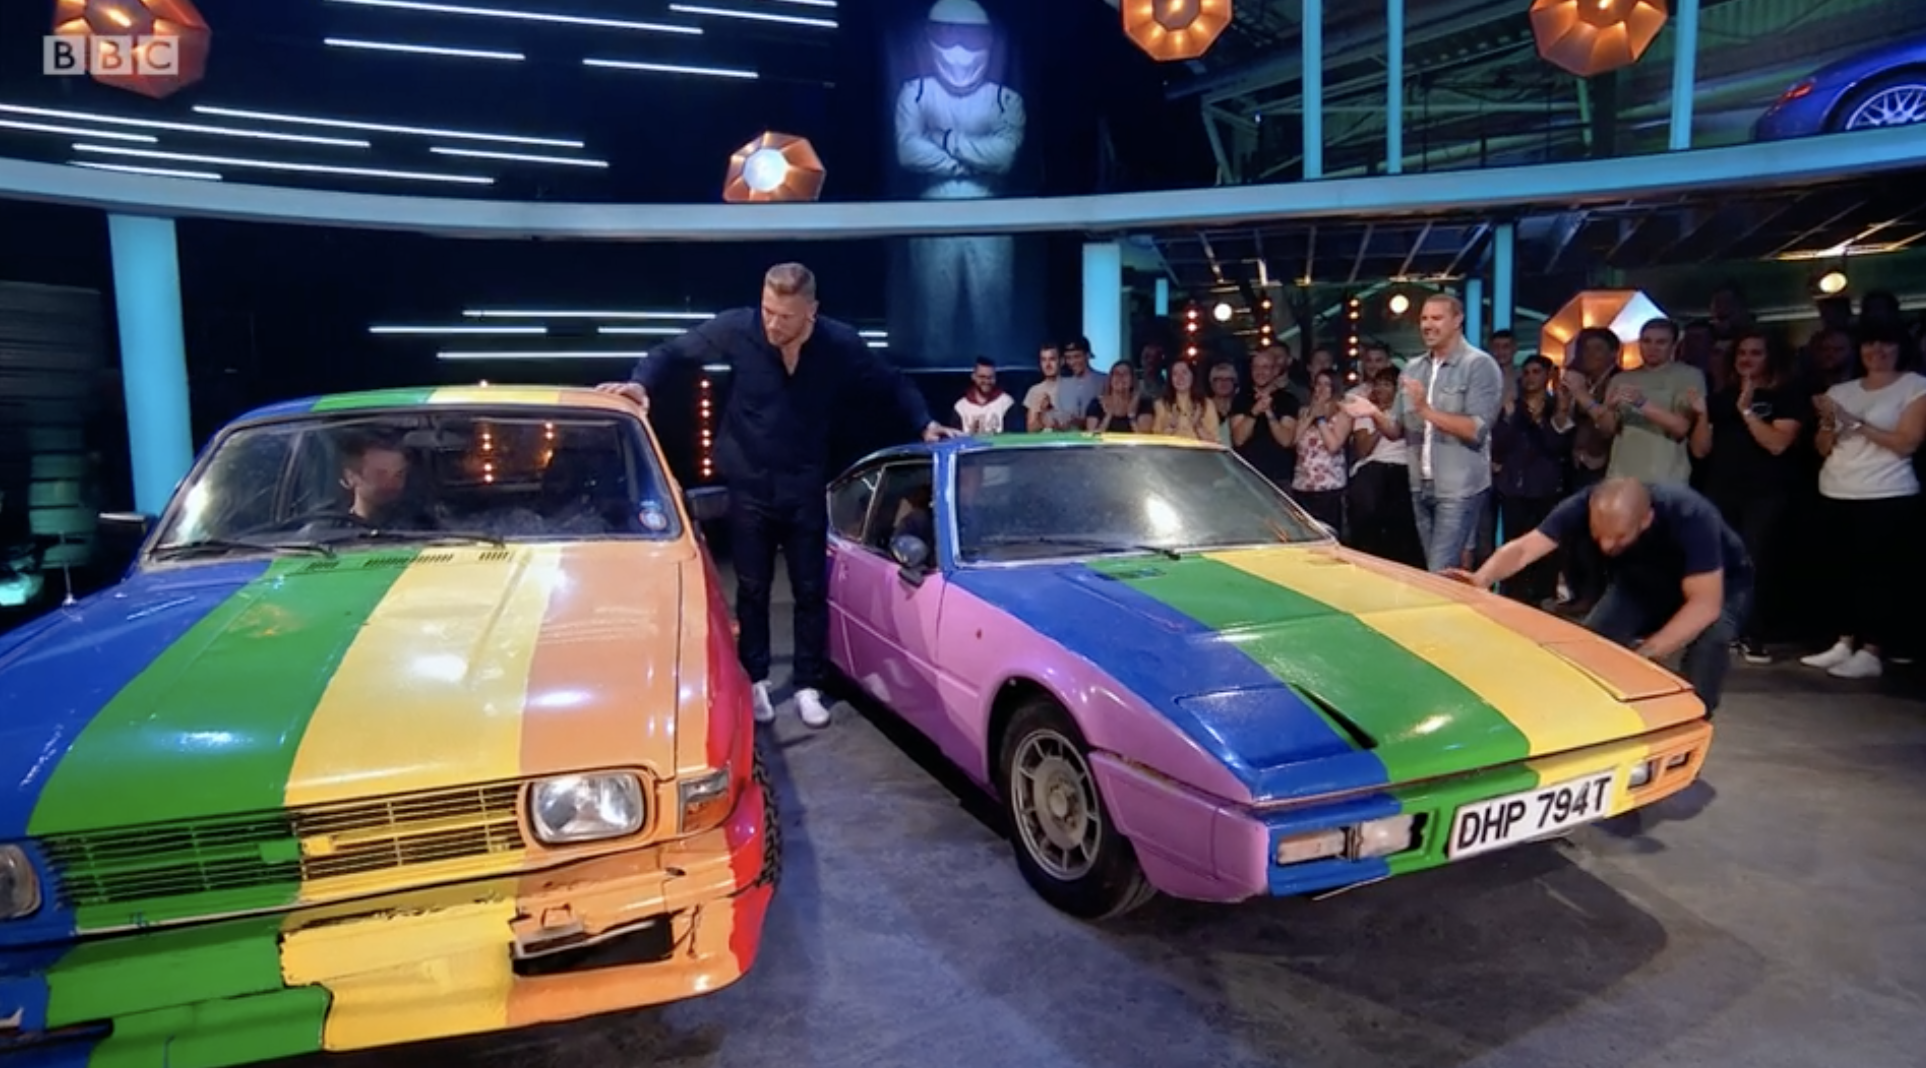 Top Gear viewers praise Freddie Flintoff and Paddy McGuinness for standing against anti-LGBTQ+ laws in controversial episode